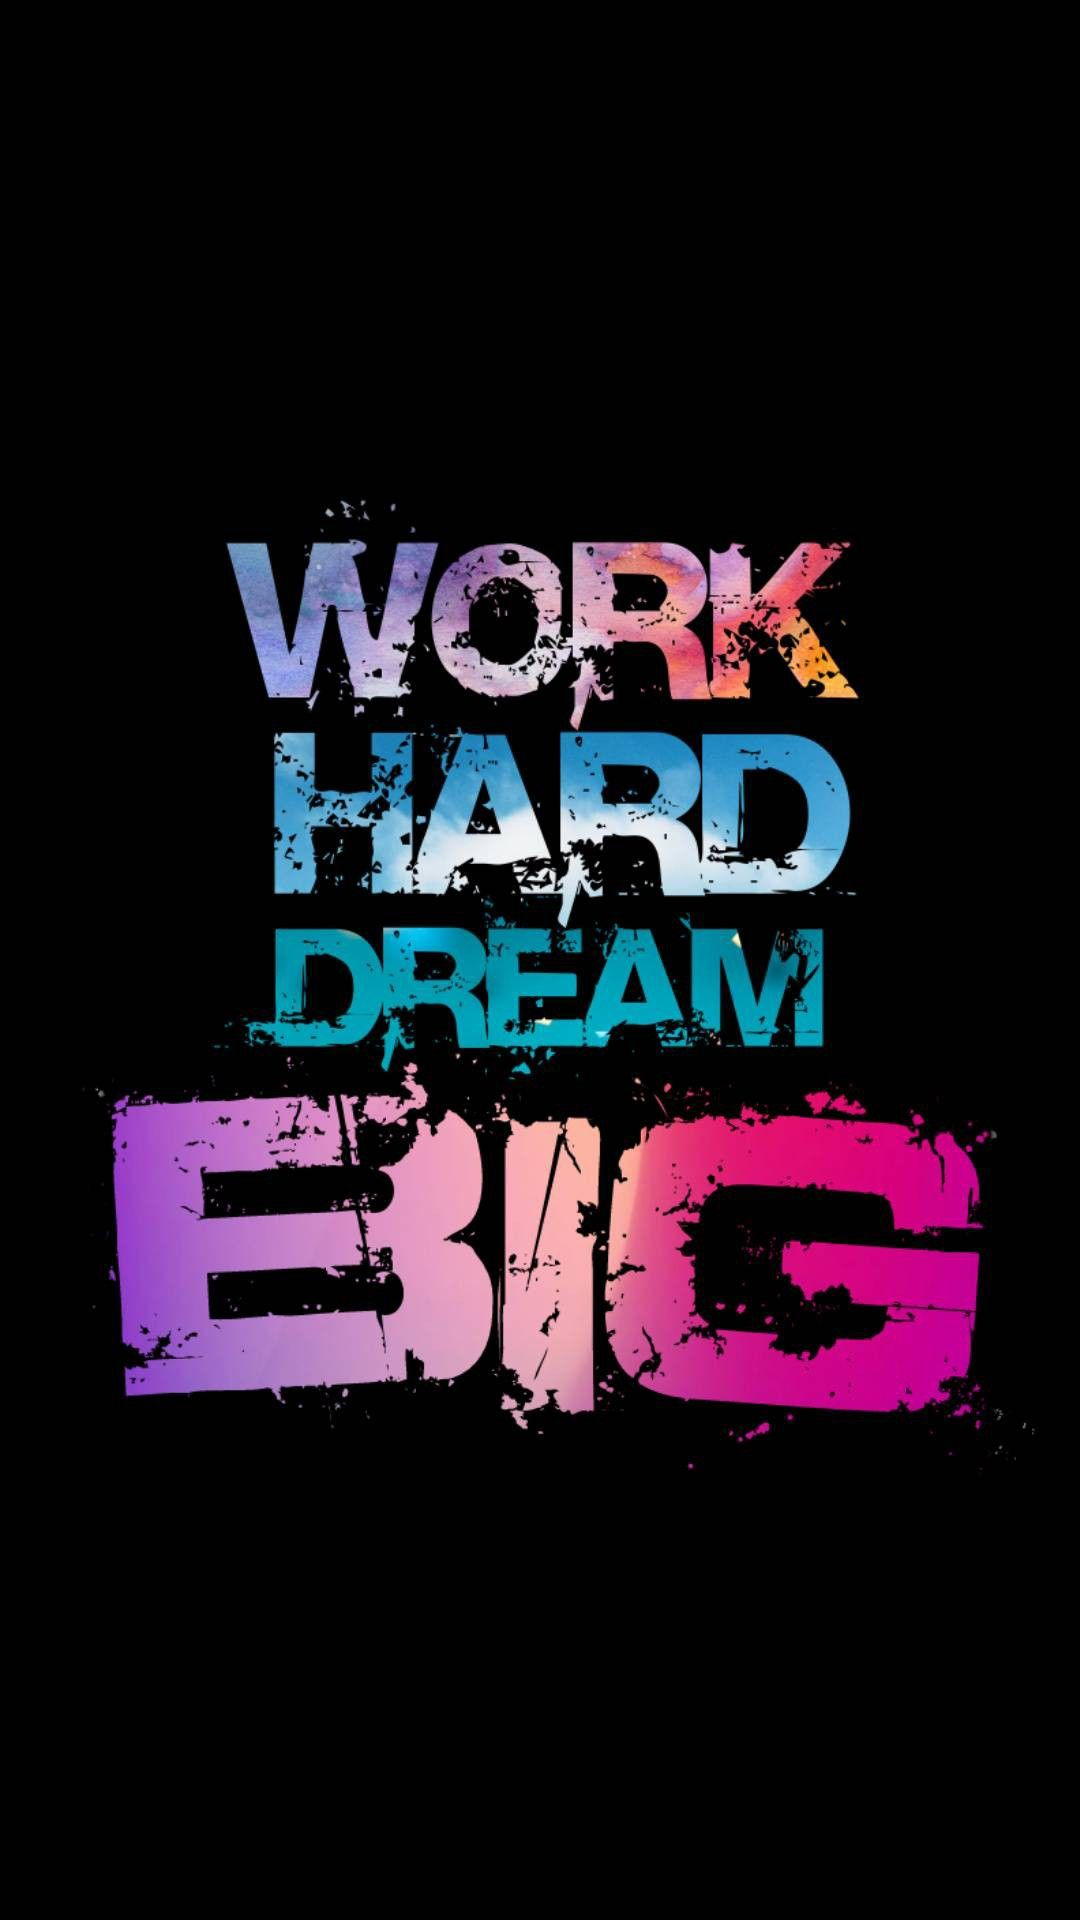 Work Hard Dream Big Wallpaper Quotes Phone Wallpaper Quotes Motivational Quotes Wallpaper 4k wallpaper quotes for mobile